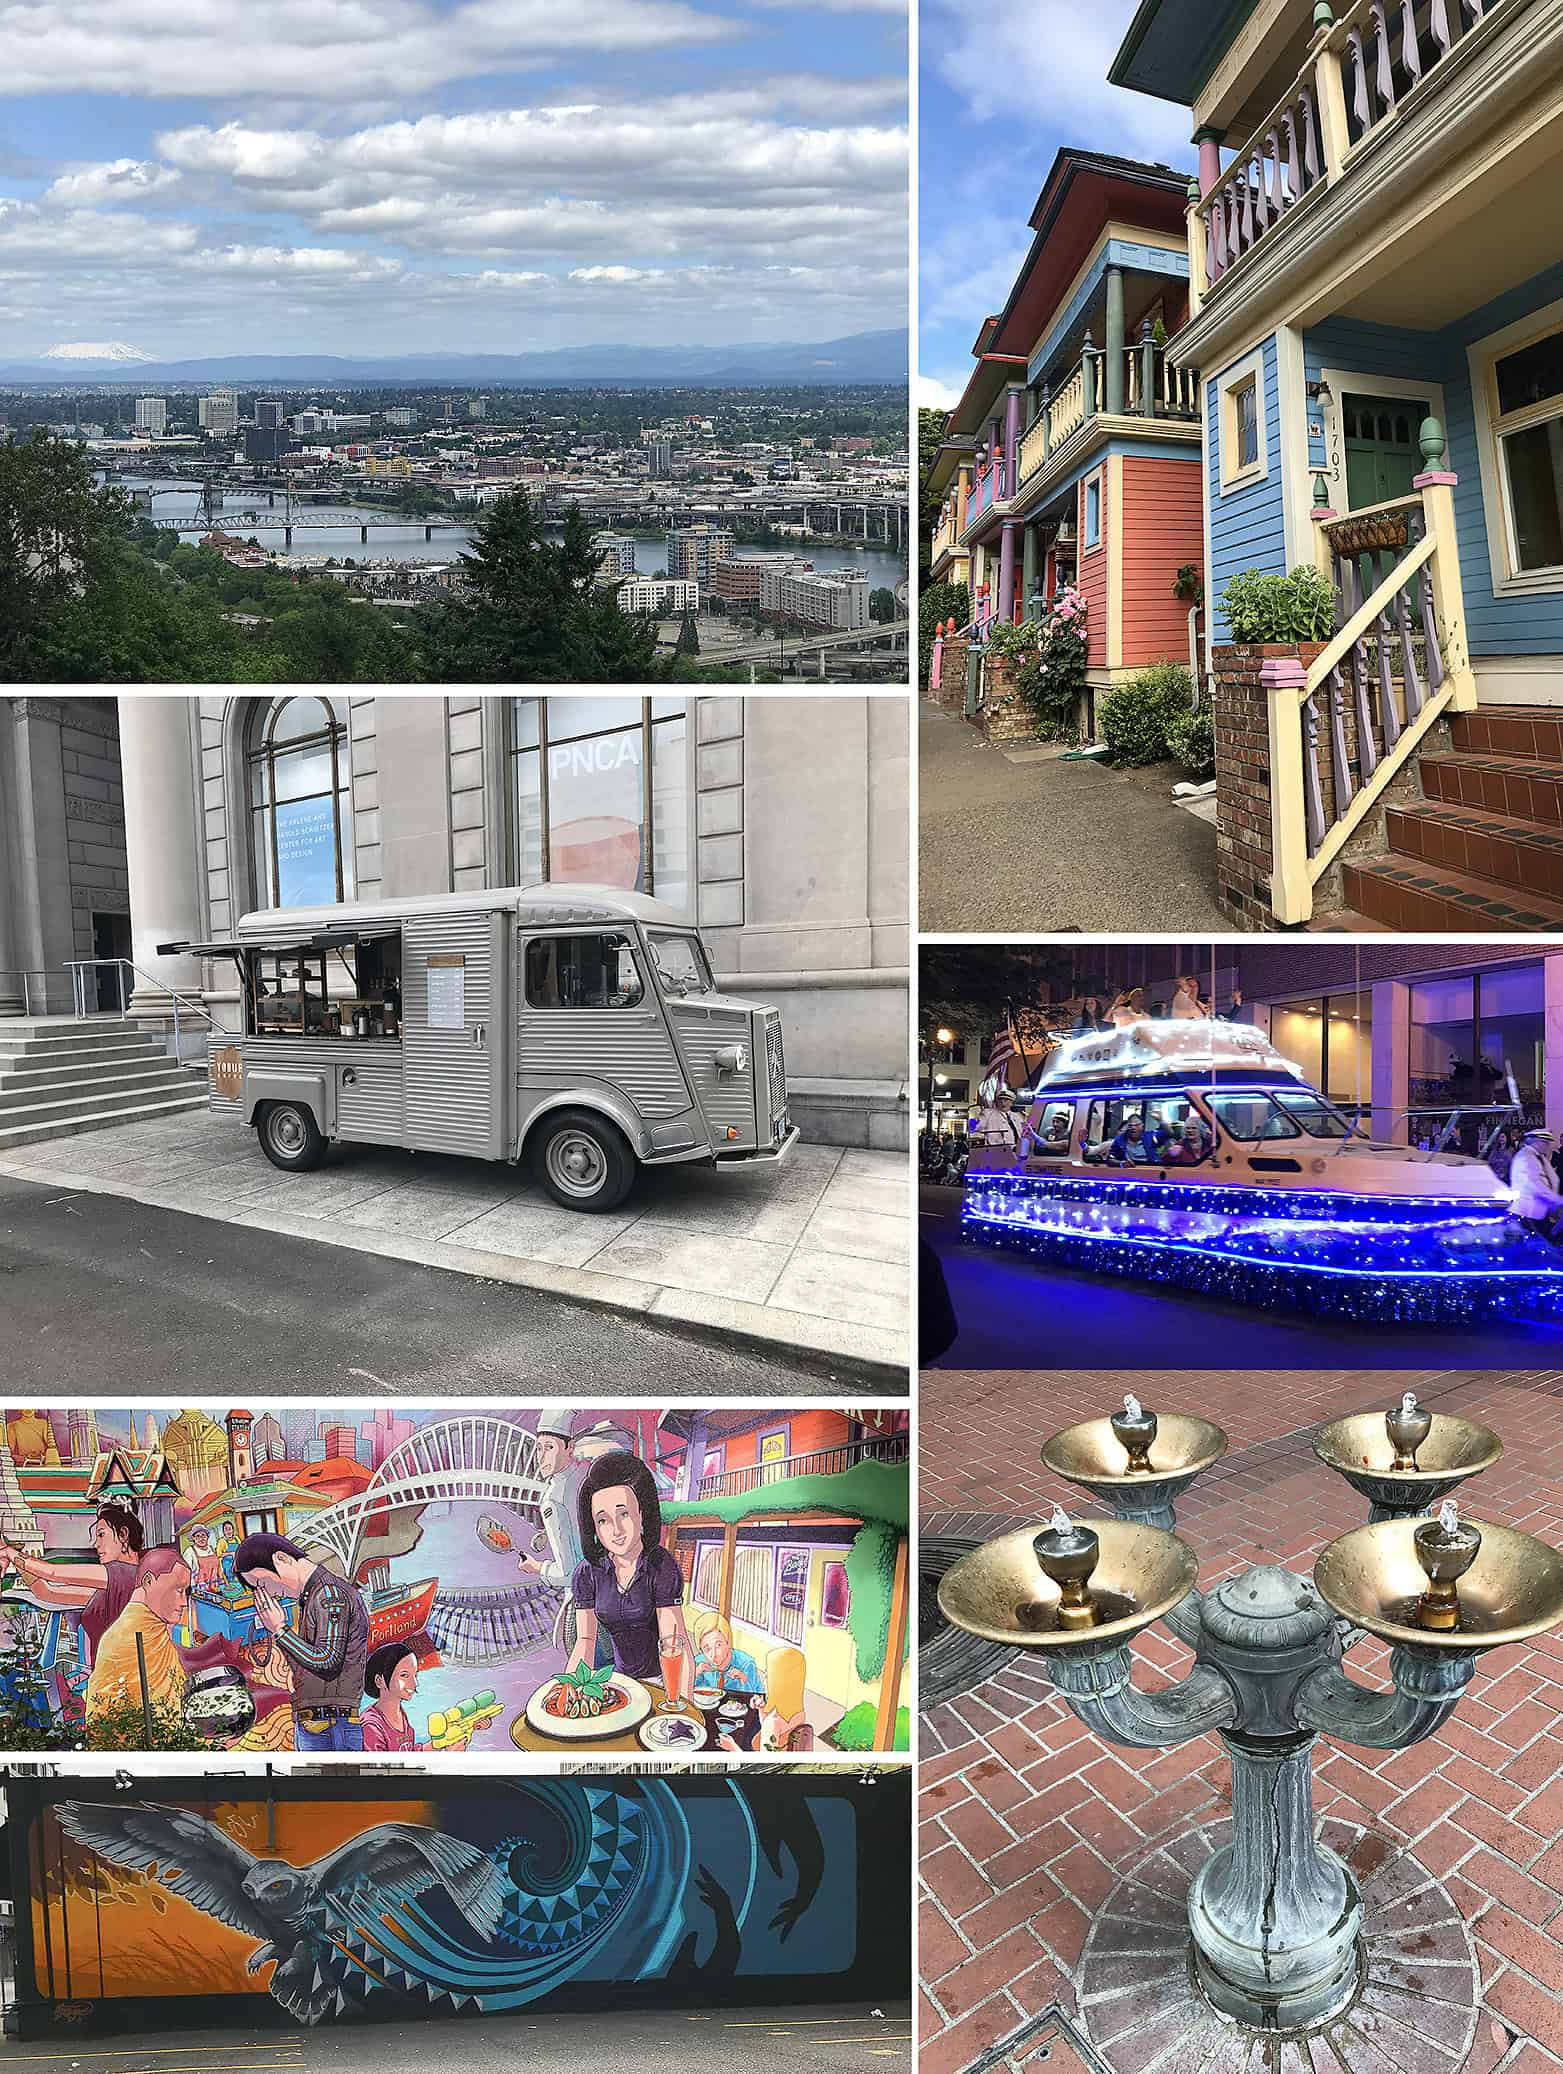 Around Portland & Aerial Tram Views